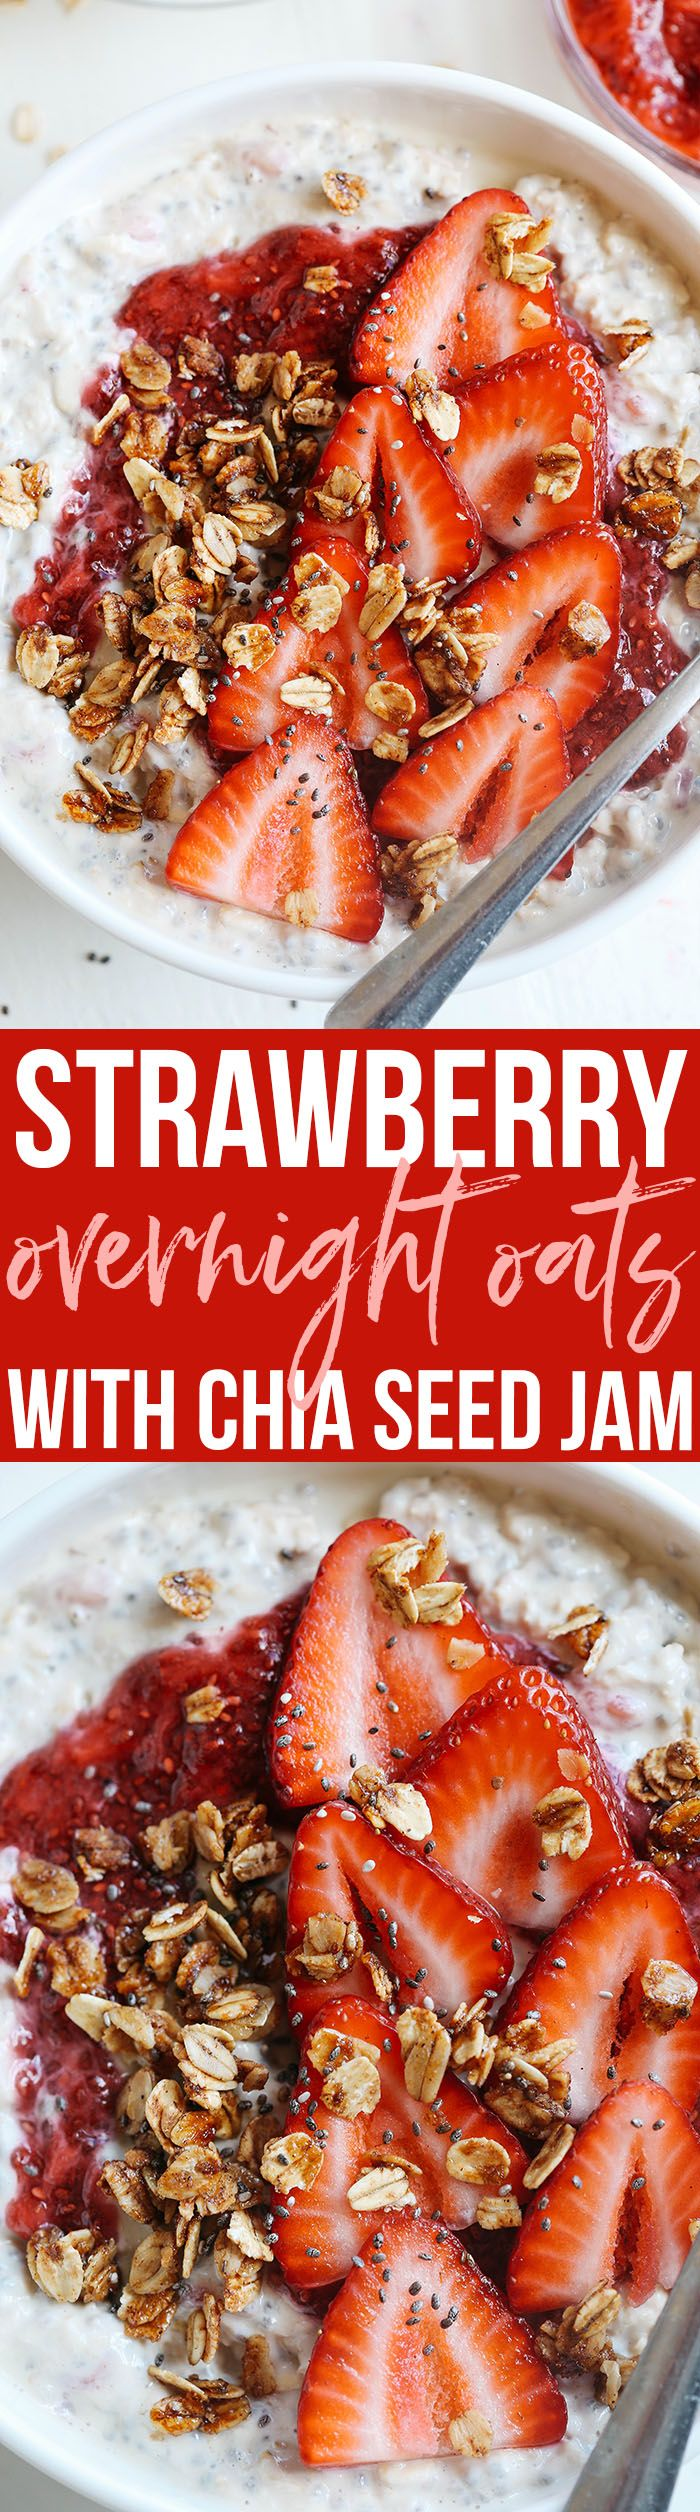 These Strawberry Chia Overnight Oats with homemade chia seed jam are easily made in just minutes the night before giving you a delicious healthy breakfast to wake up to!